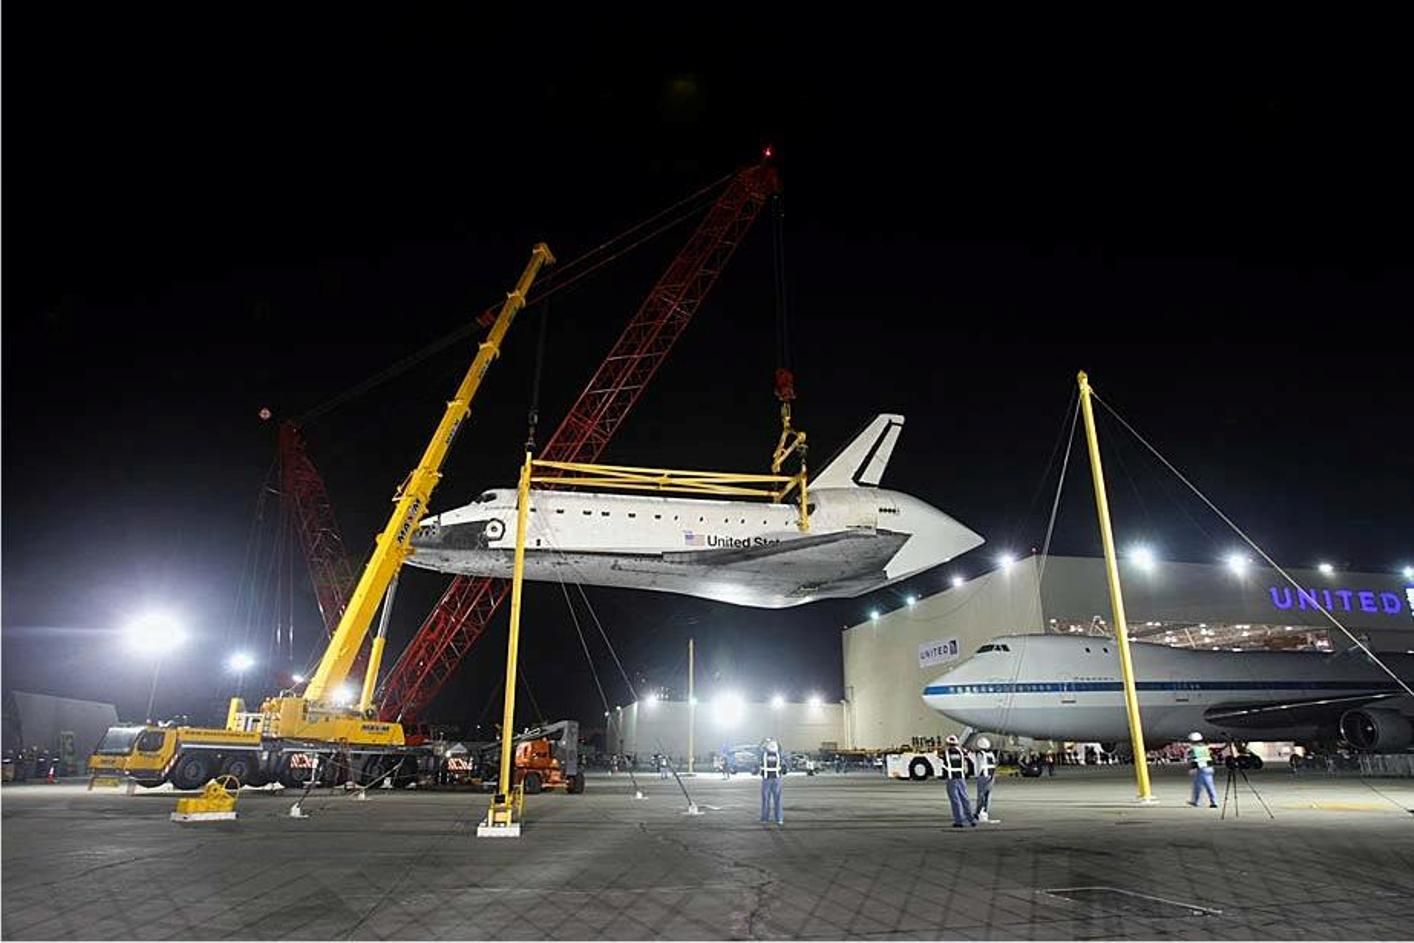 Shuttle is off the NASA 767 awaiting her ground